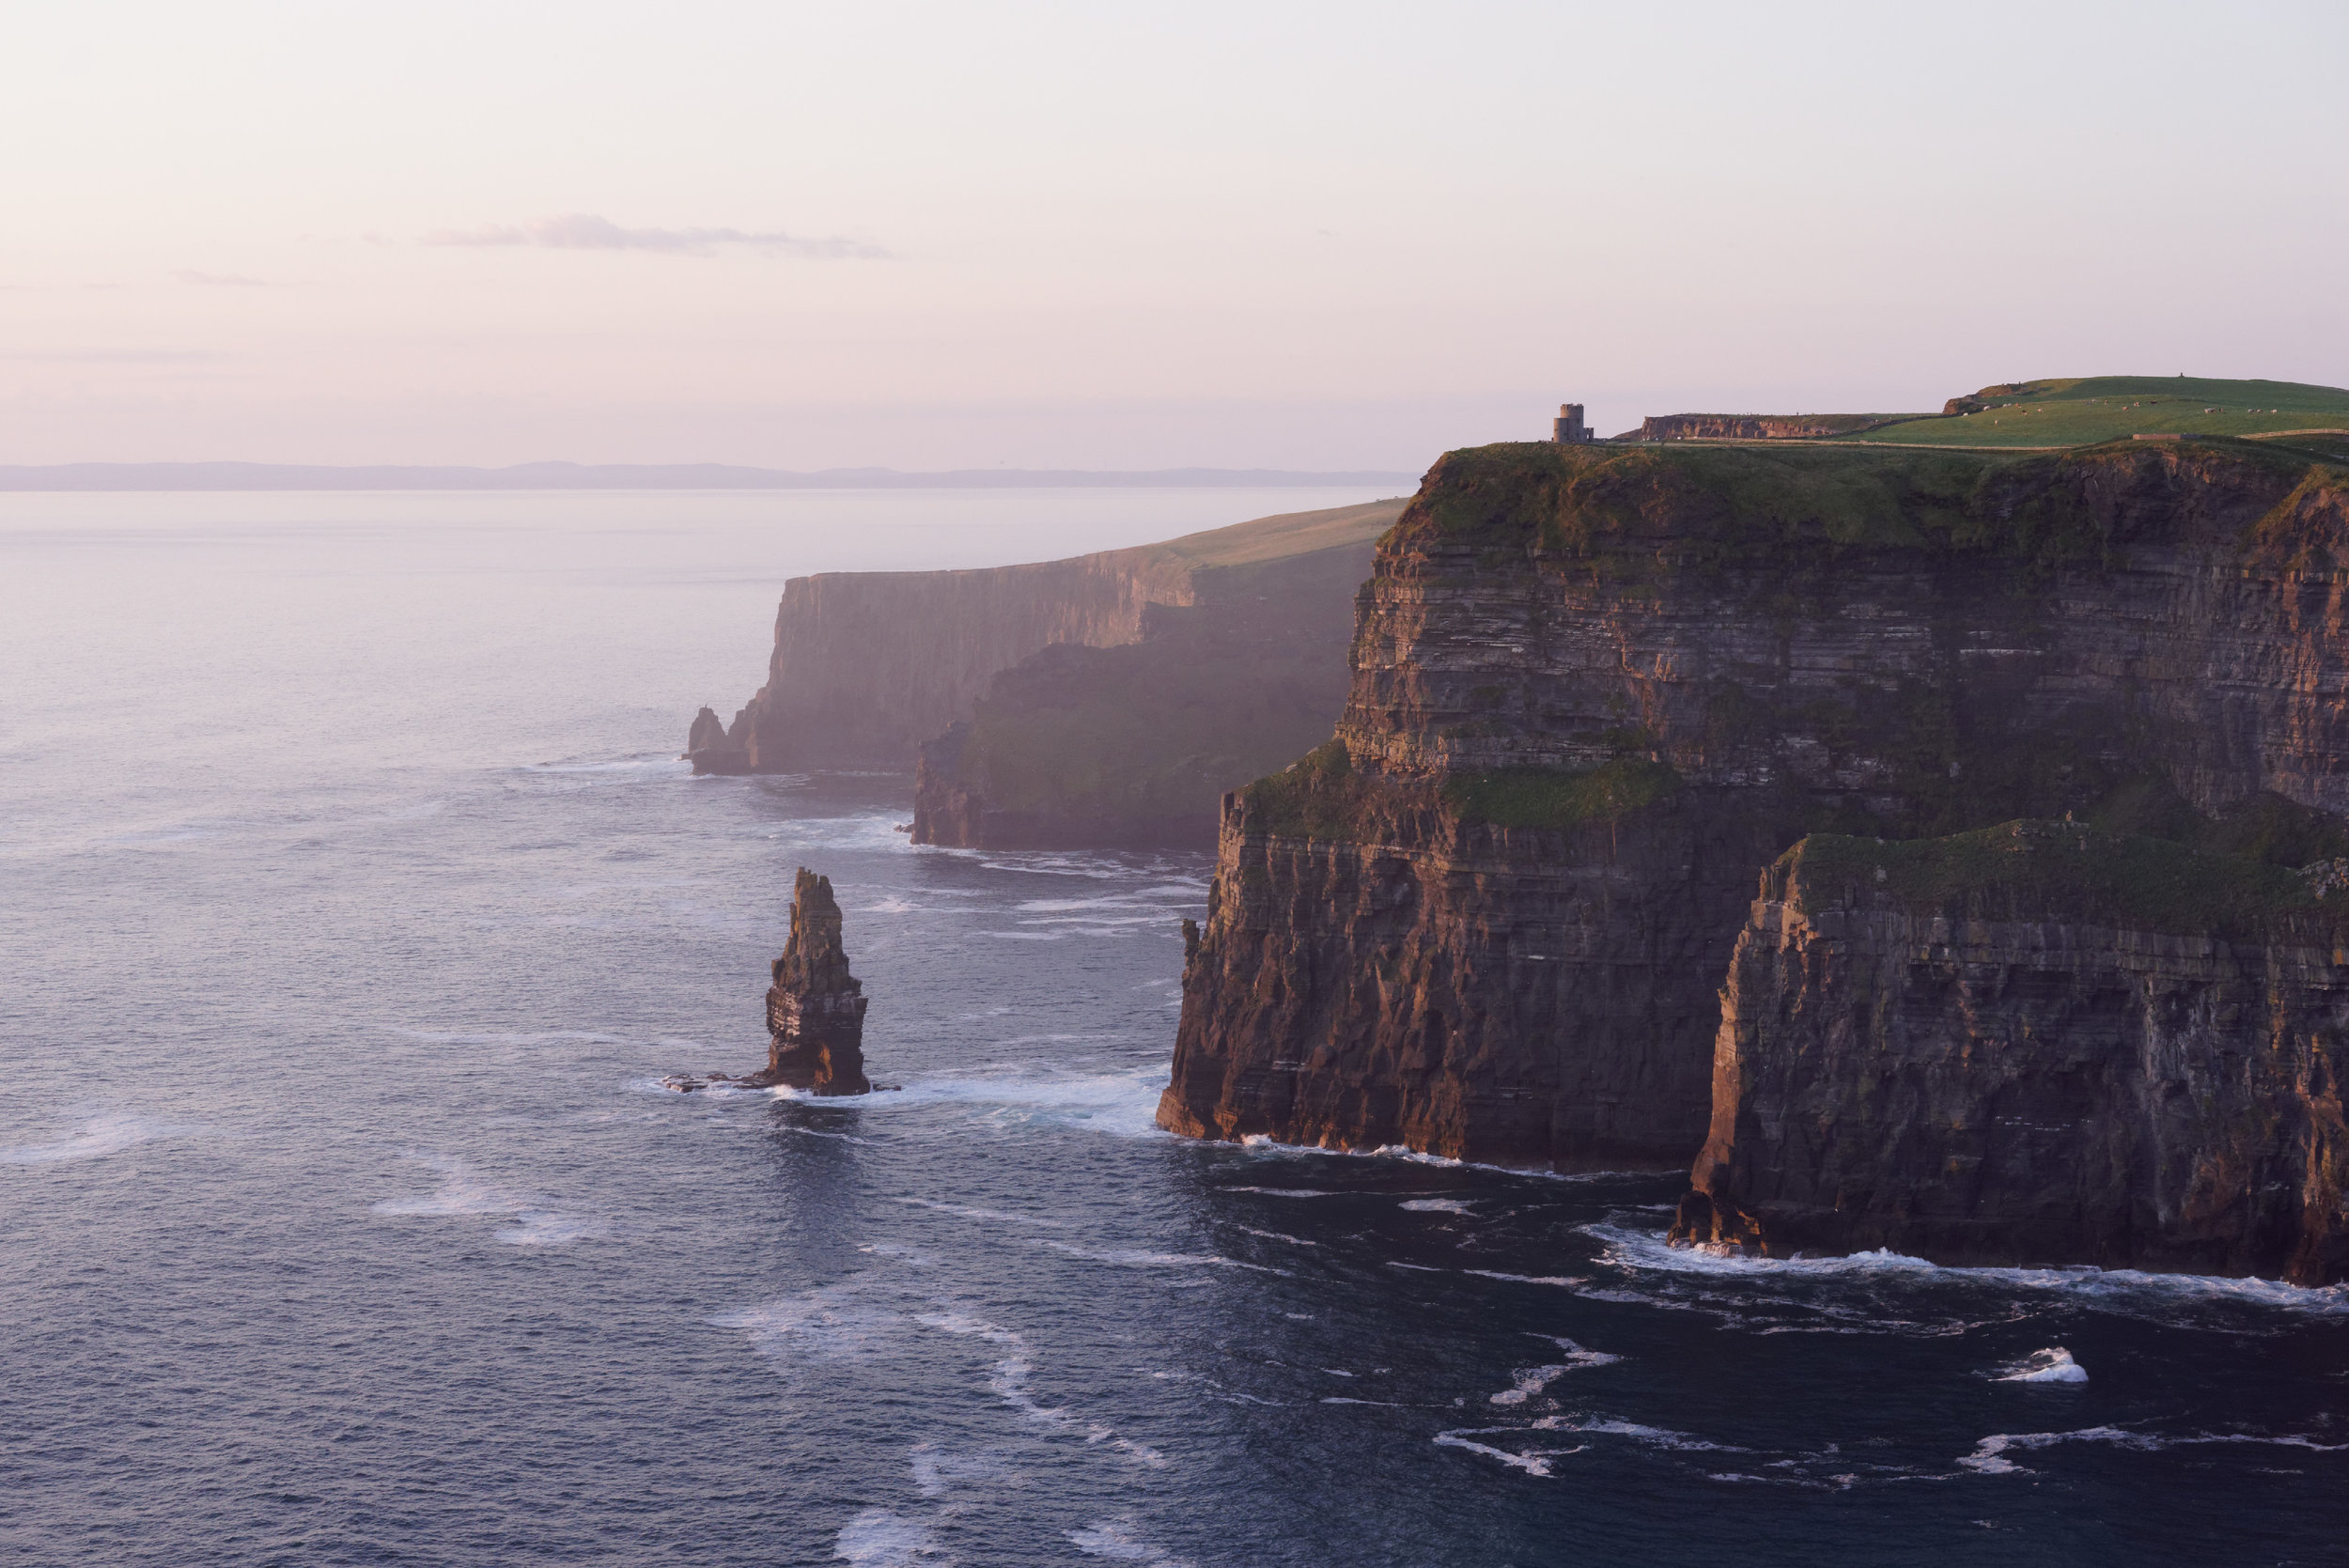 Cliffs of Moher, Ireland by Vincent Guth